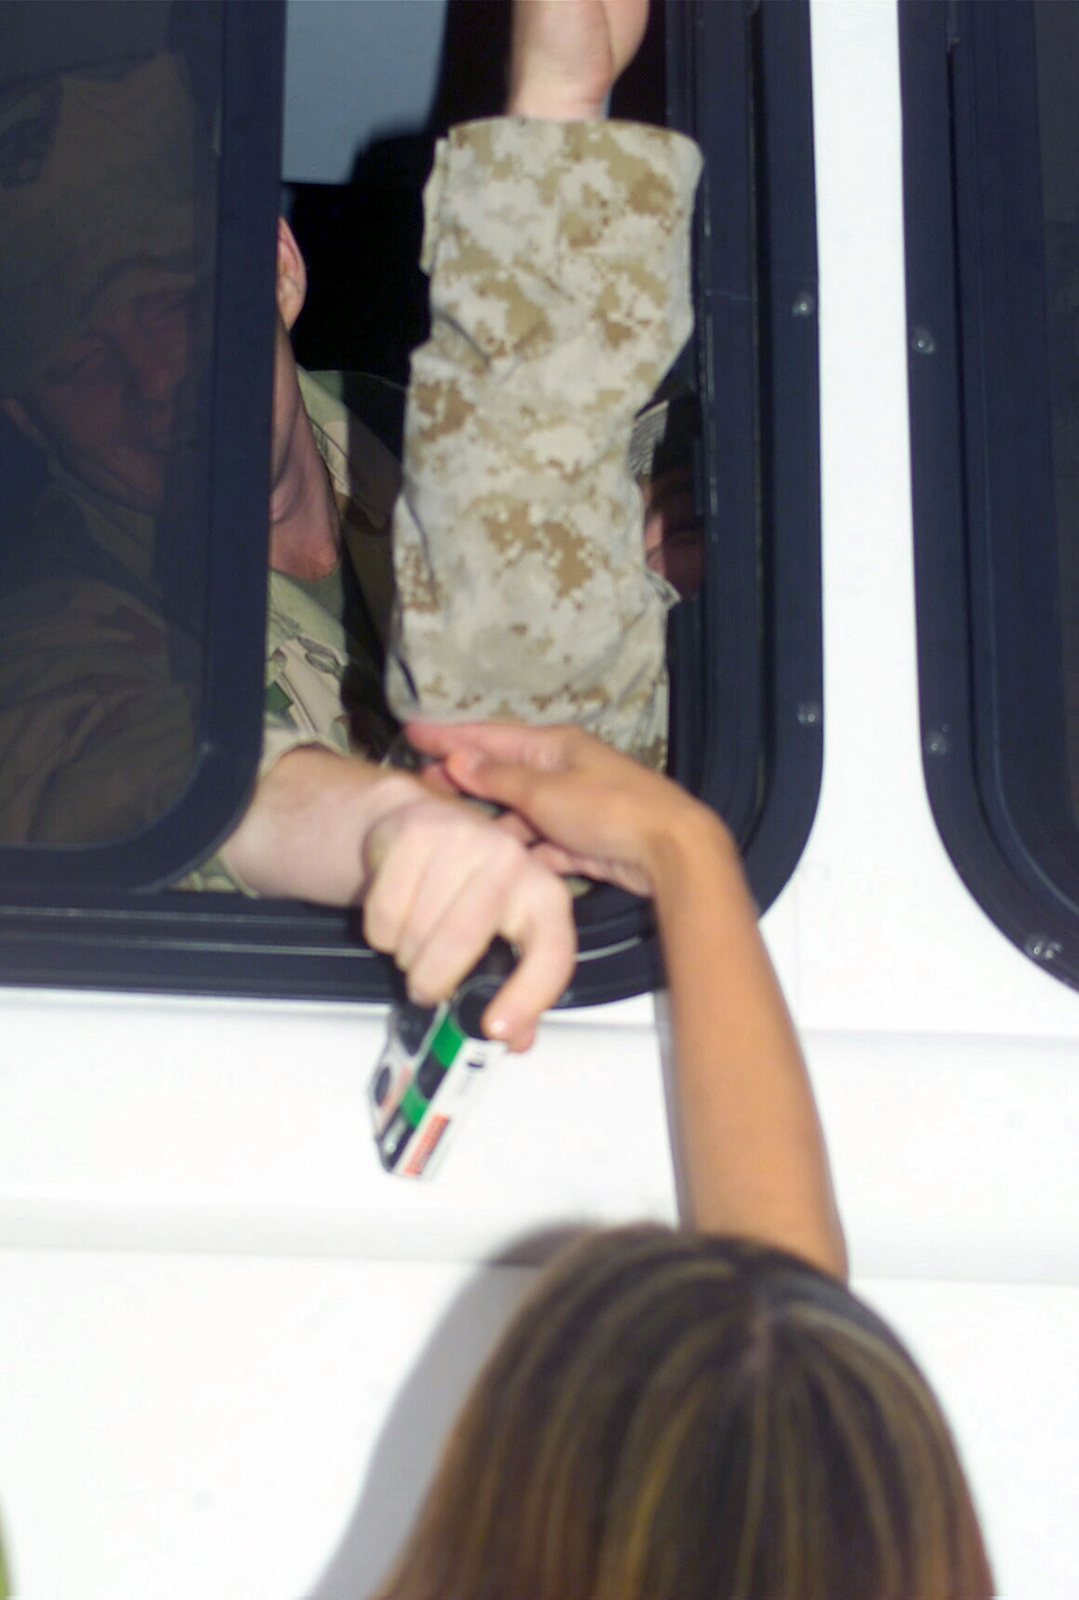 Myreen Panganiban gets a quick touch of her fianc, Corporal (CPL) Jason Martinez, on the bus arriving from March AFB. CPL Martinez, Headquarters Battalion (HQ BN), 1ST Marine Division (1MARDIV), Camp Pendleton, California, is returning from a six-month deployment in support of Operation IRAQI FREEDOM. Operation IRAQI FREEDOM is the multinational coalition effort to liberate the Iraqi people, eliminate Iraq's weapons of mass destruction and end the regime of Saddam Hussein